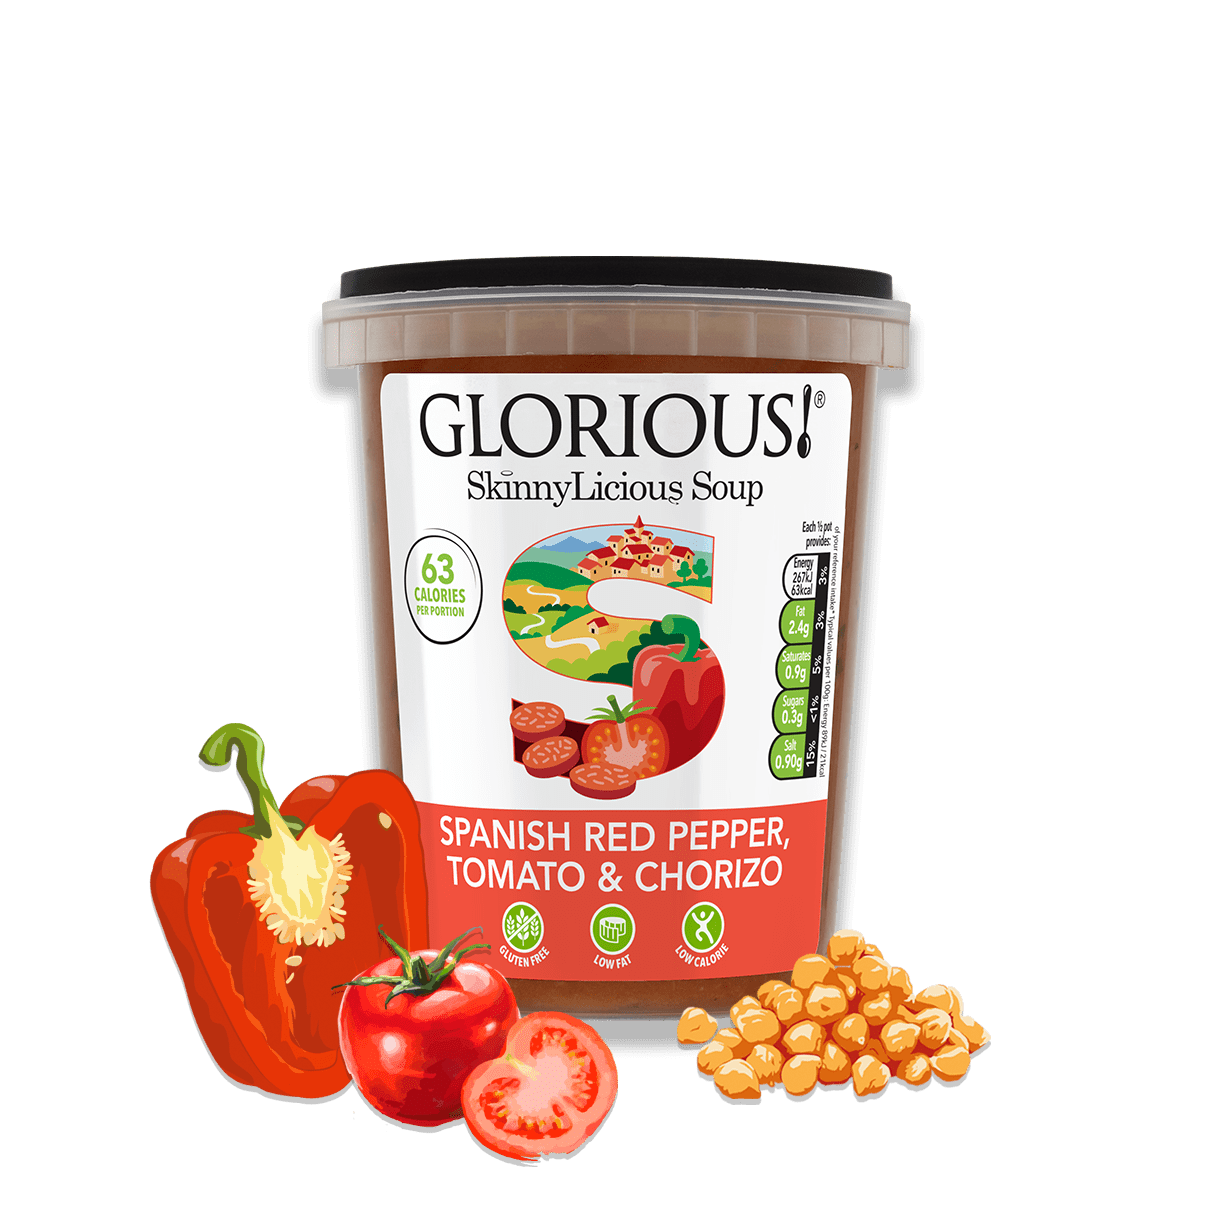 SkinnyLicious Healthy Soups by GLORIOUS!